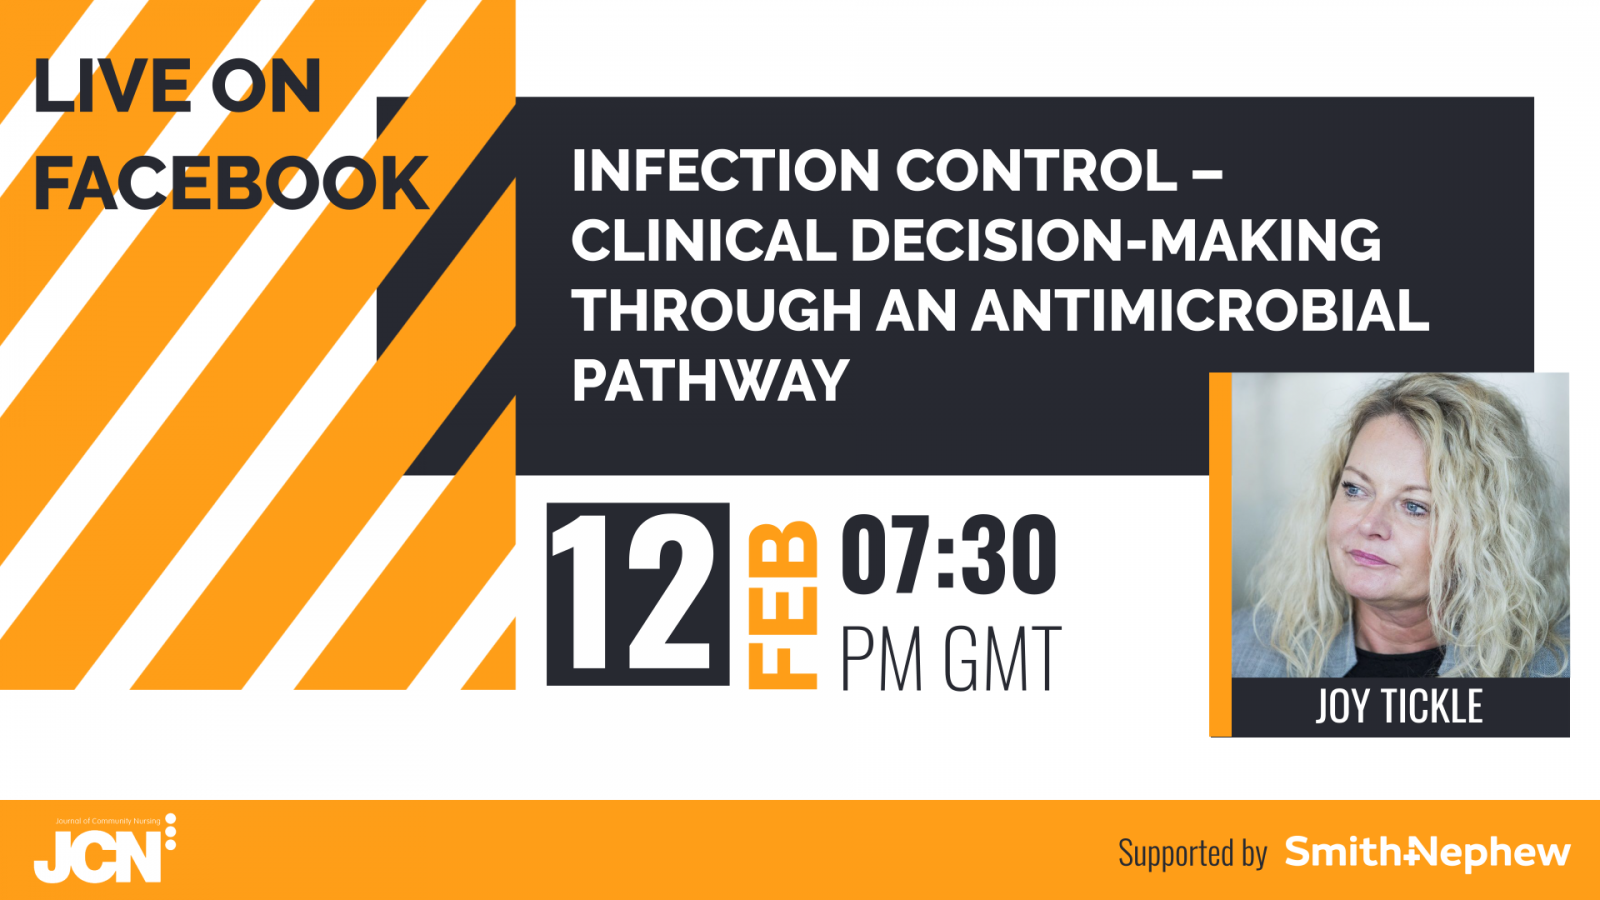 Facebook Live: Infection control clinical decision making through an antimicrobial pathway